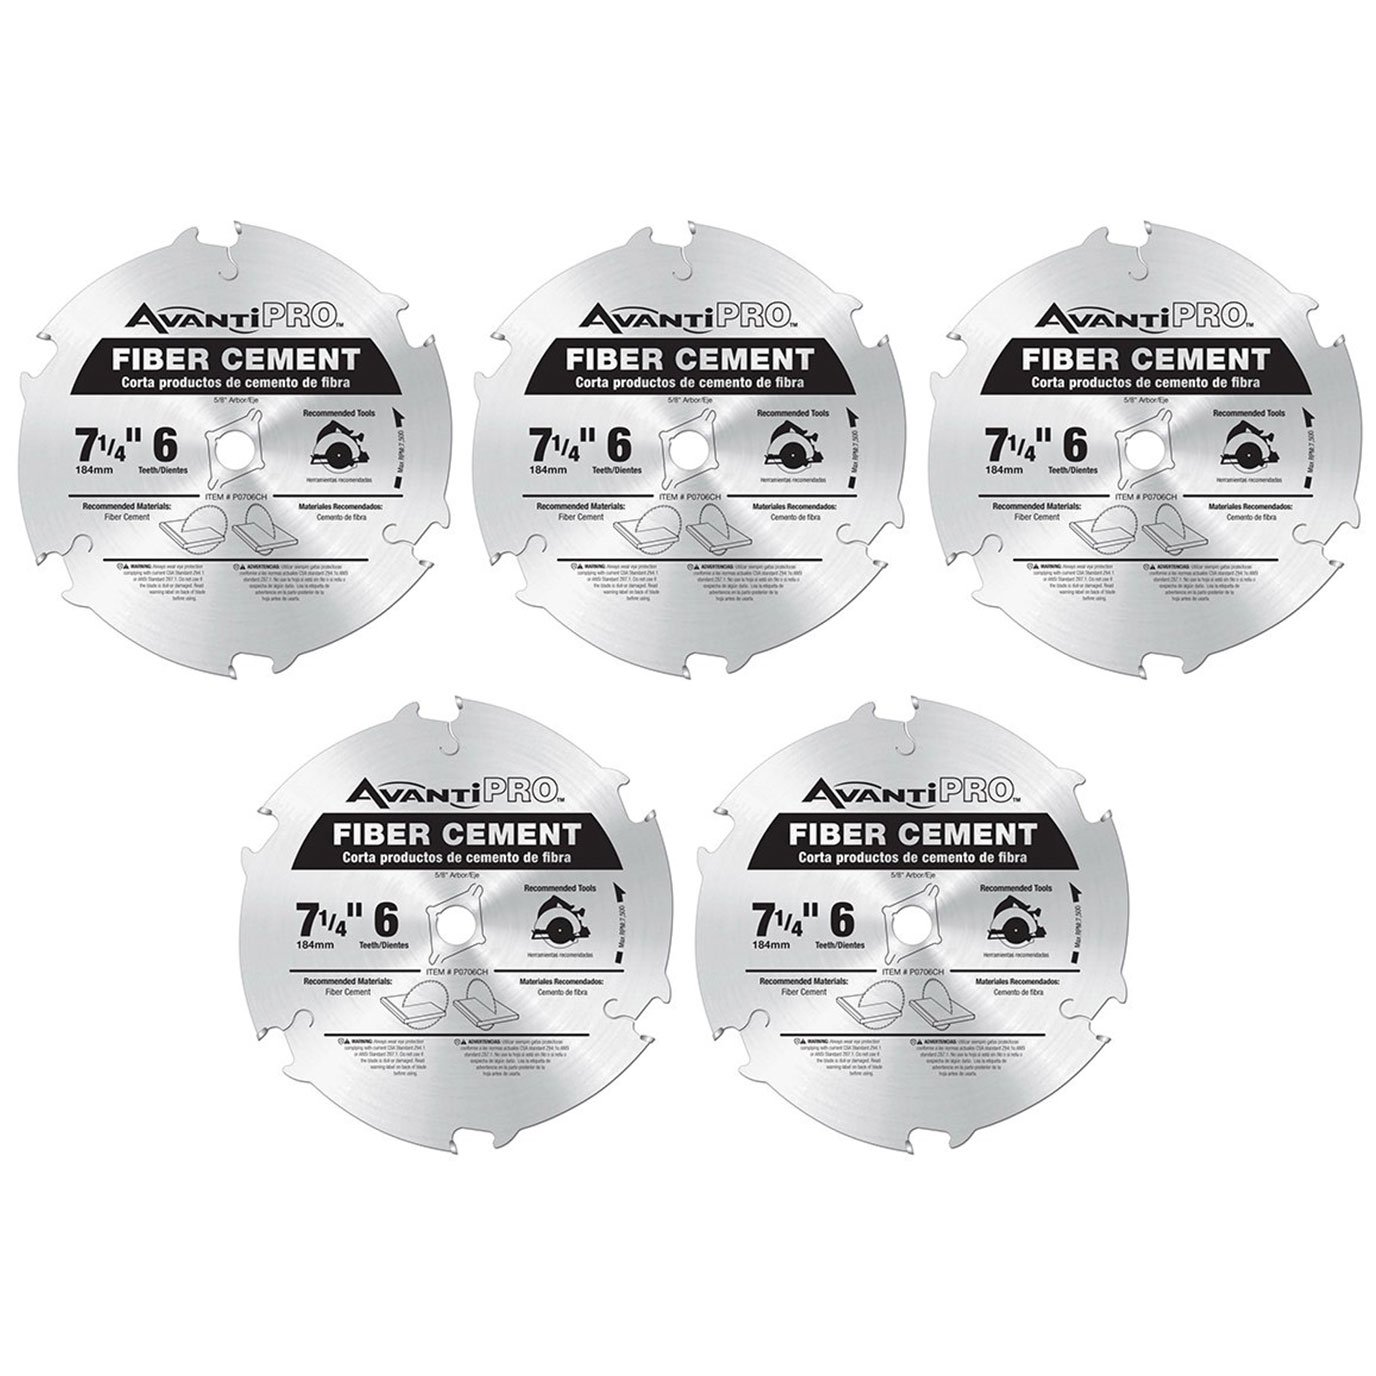 AvantiPro P0706CH 7-1/4-inch 6T Fiber Cement 5/8-inch Arbor Saw Blades, 5-Pack